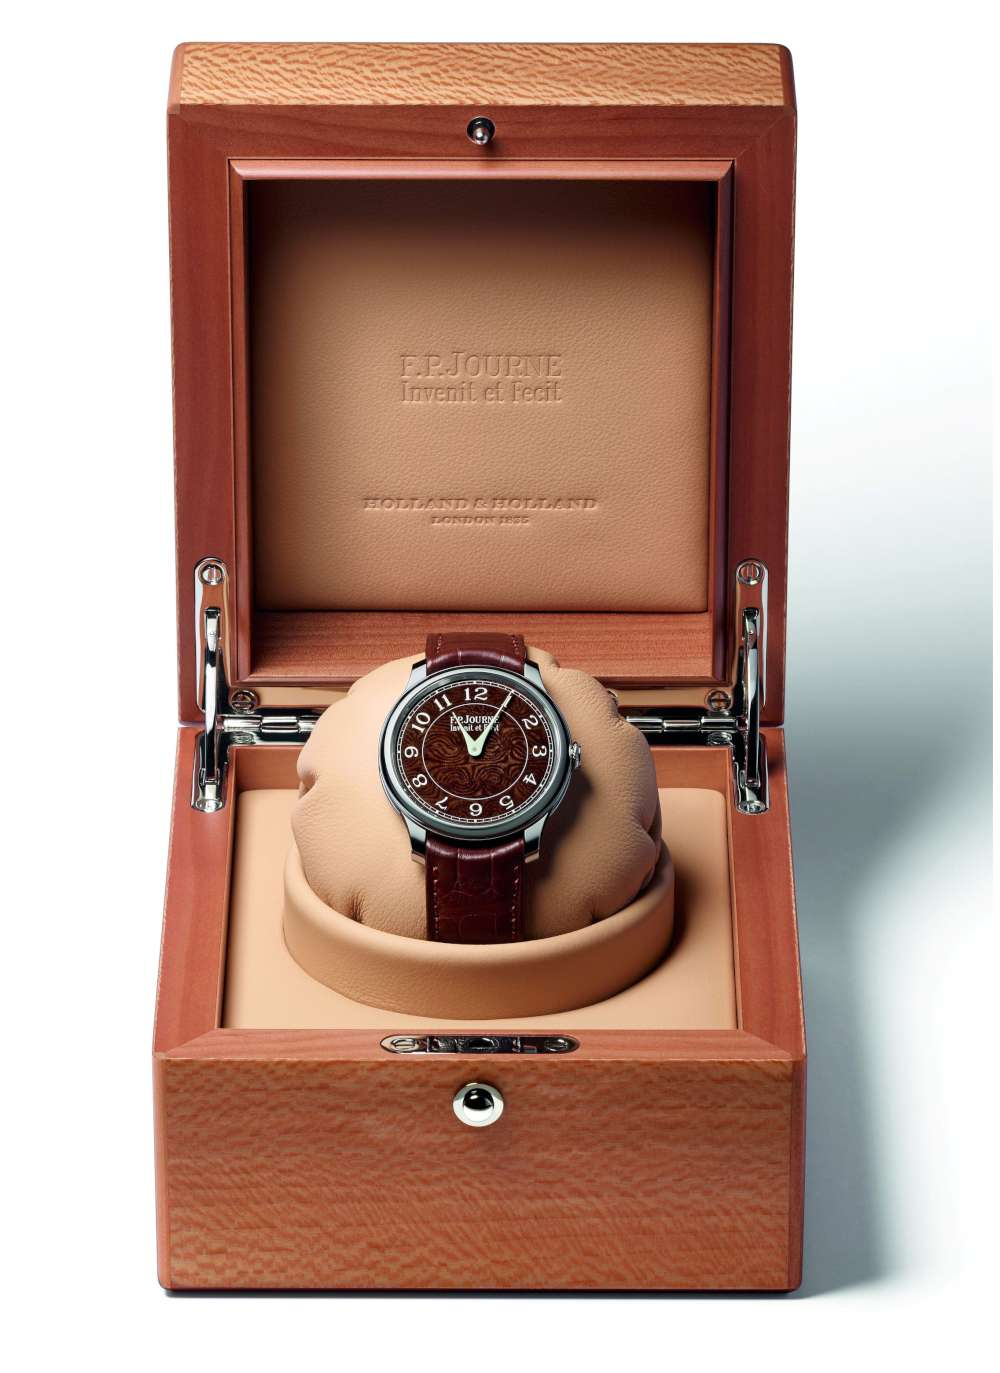 F.P. Journe Chronomètre Holland & Holland presentation case